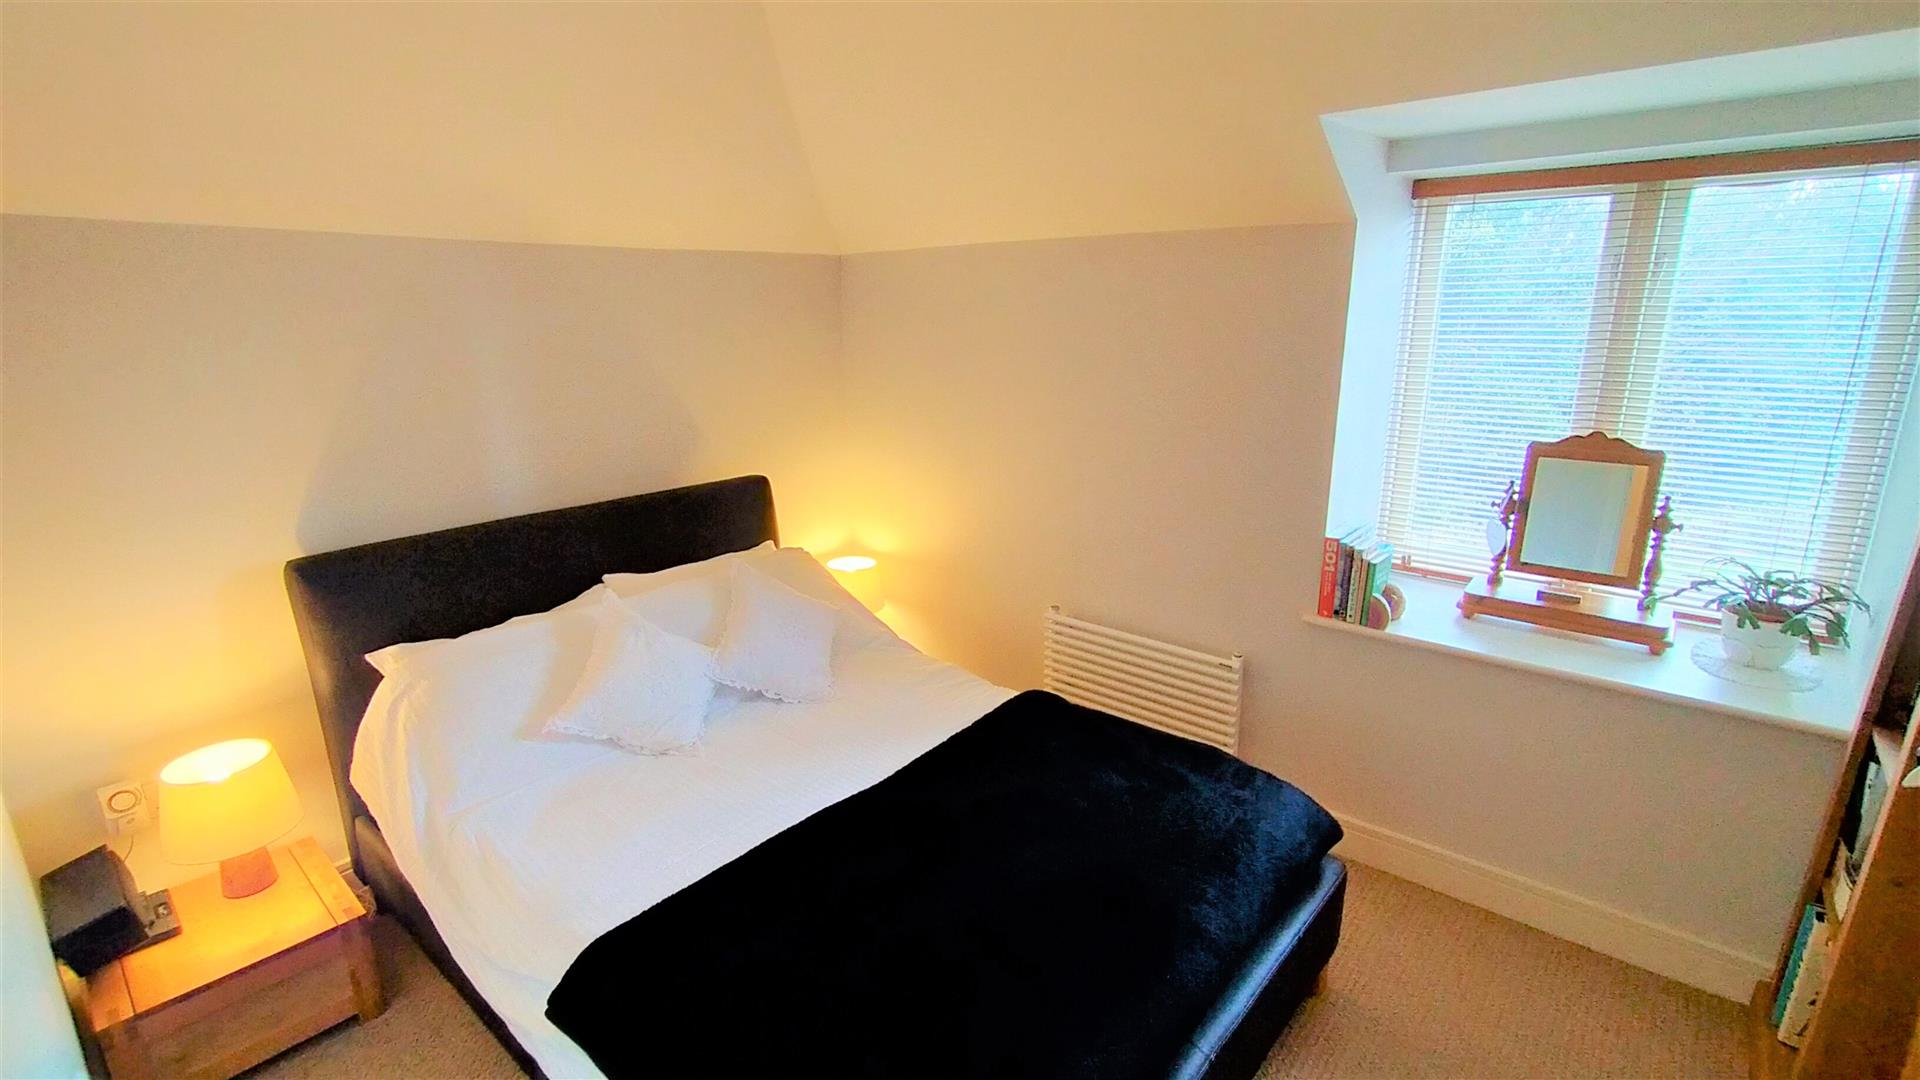 The Coach House, Castle View, Swansea, SA3 5BZ